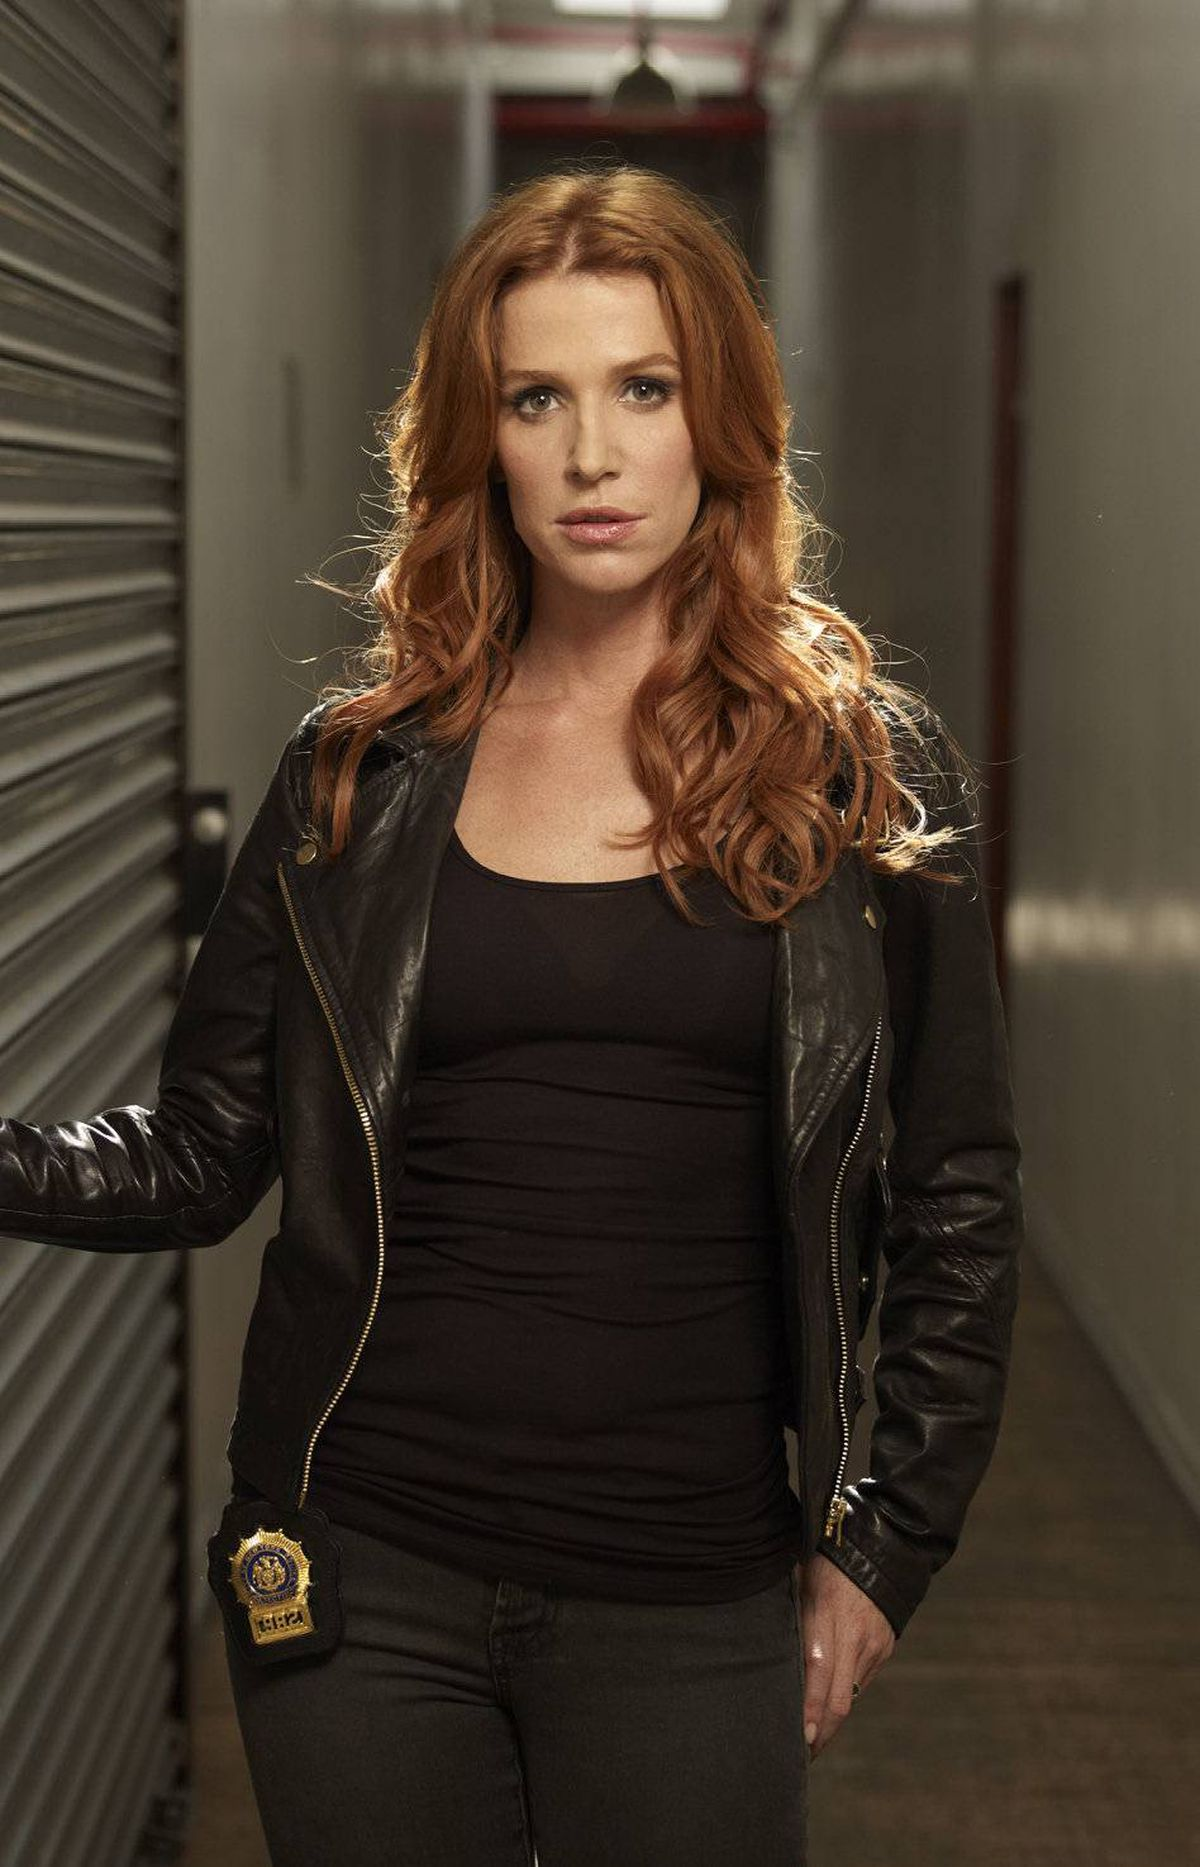 DRAMA Unforgettable CBS, CTV, 10 p.m. Having a remarkable memory can be both a curse and a blessing. Launching tonight, this new series stars former Without a Trace regular Poppy Montgomery as New York police detective Carrie Wells, who is afflicted with the extremely rare affliction known as hyperthymesia. The condition allows Carrie to remember details of every single thing she sees or hears. The bad news is that she can never forget it. In tonight's pilot, a brutal murder case reunites Carrie with her former police unit – and with her detective ex-boyfriend (Dylan Walsh).